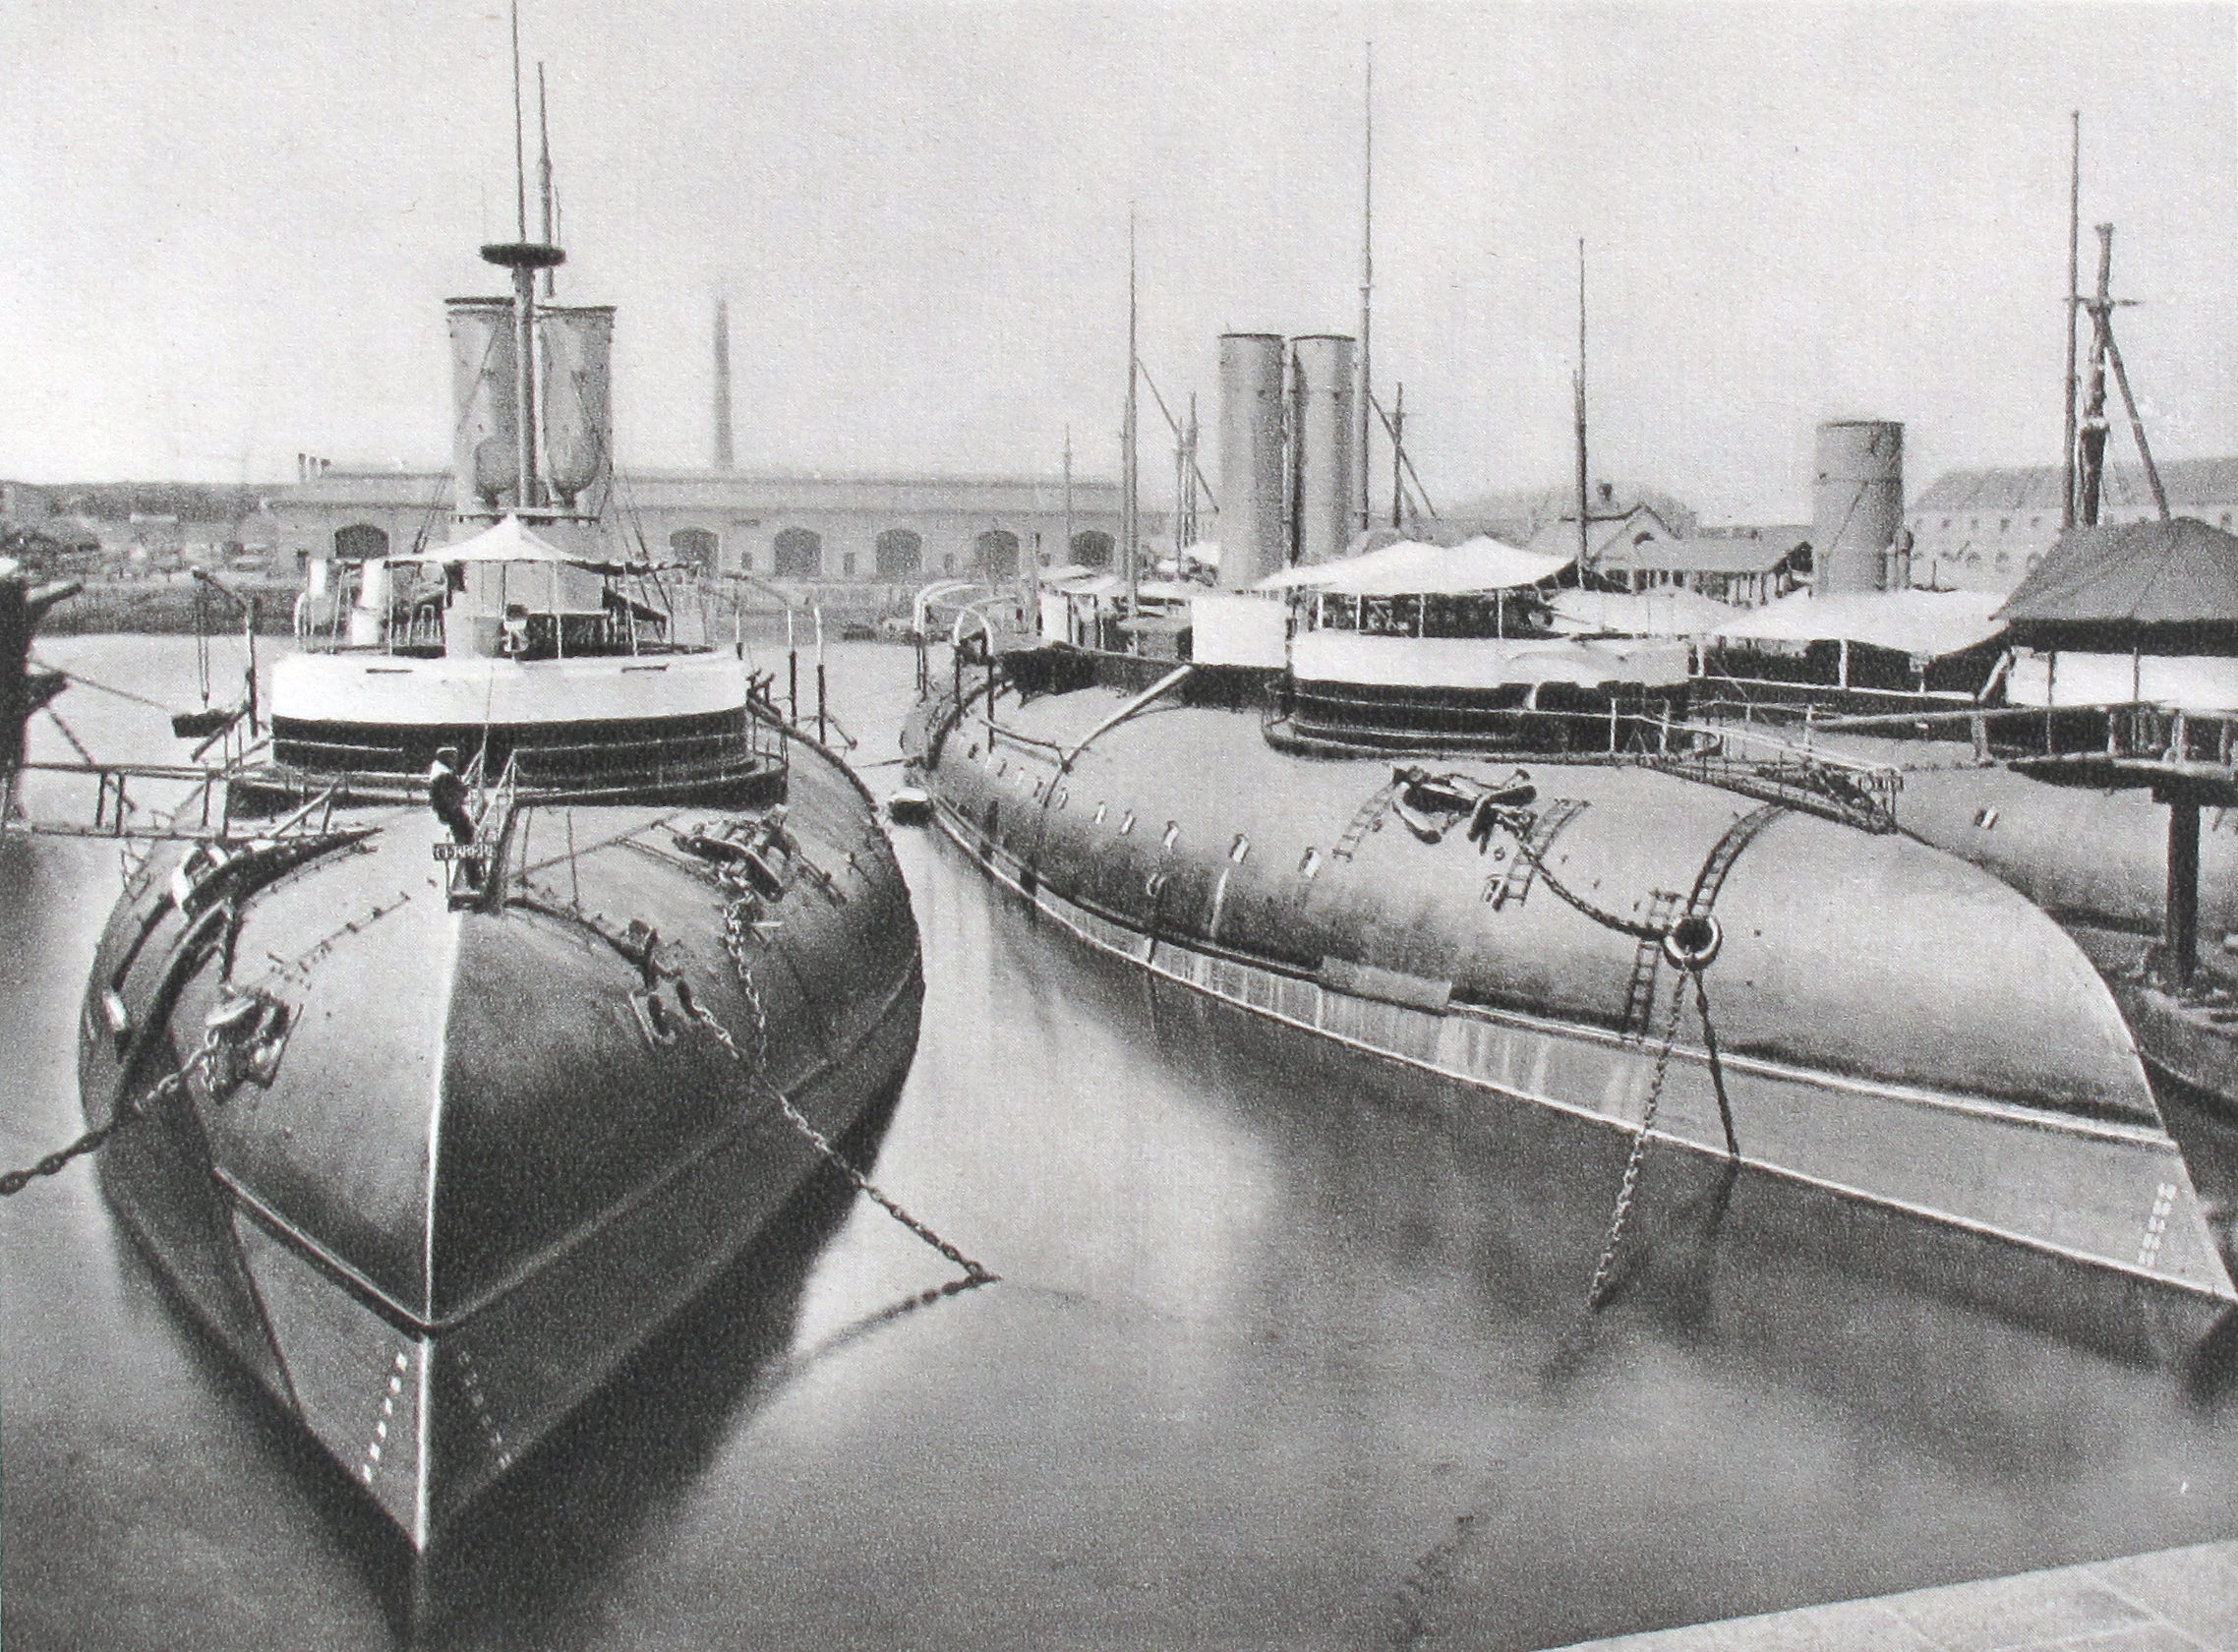 Before torpedoes: the ram ships: Cerbère and Bélier